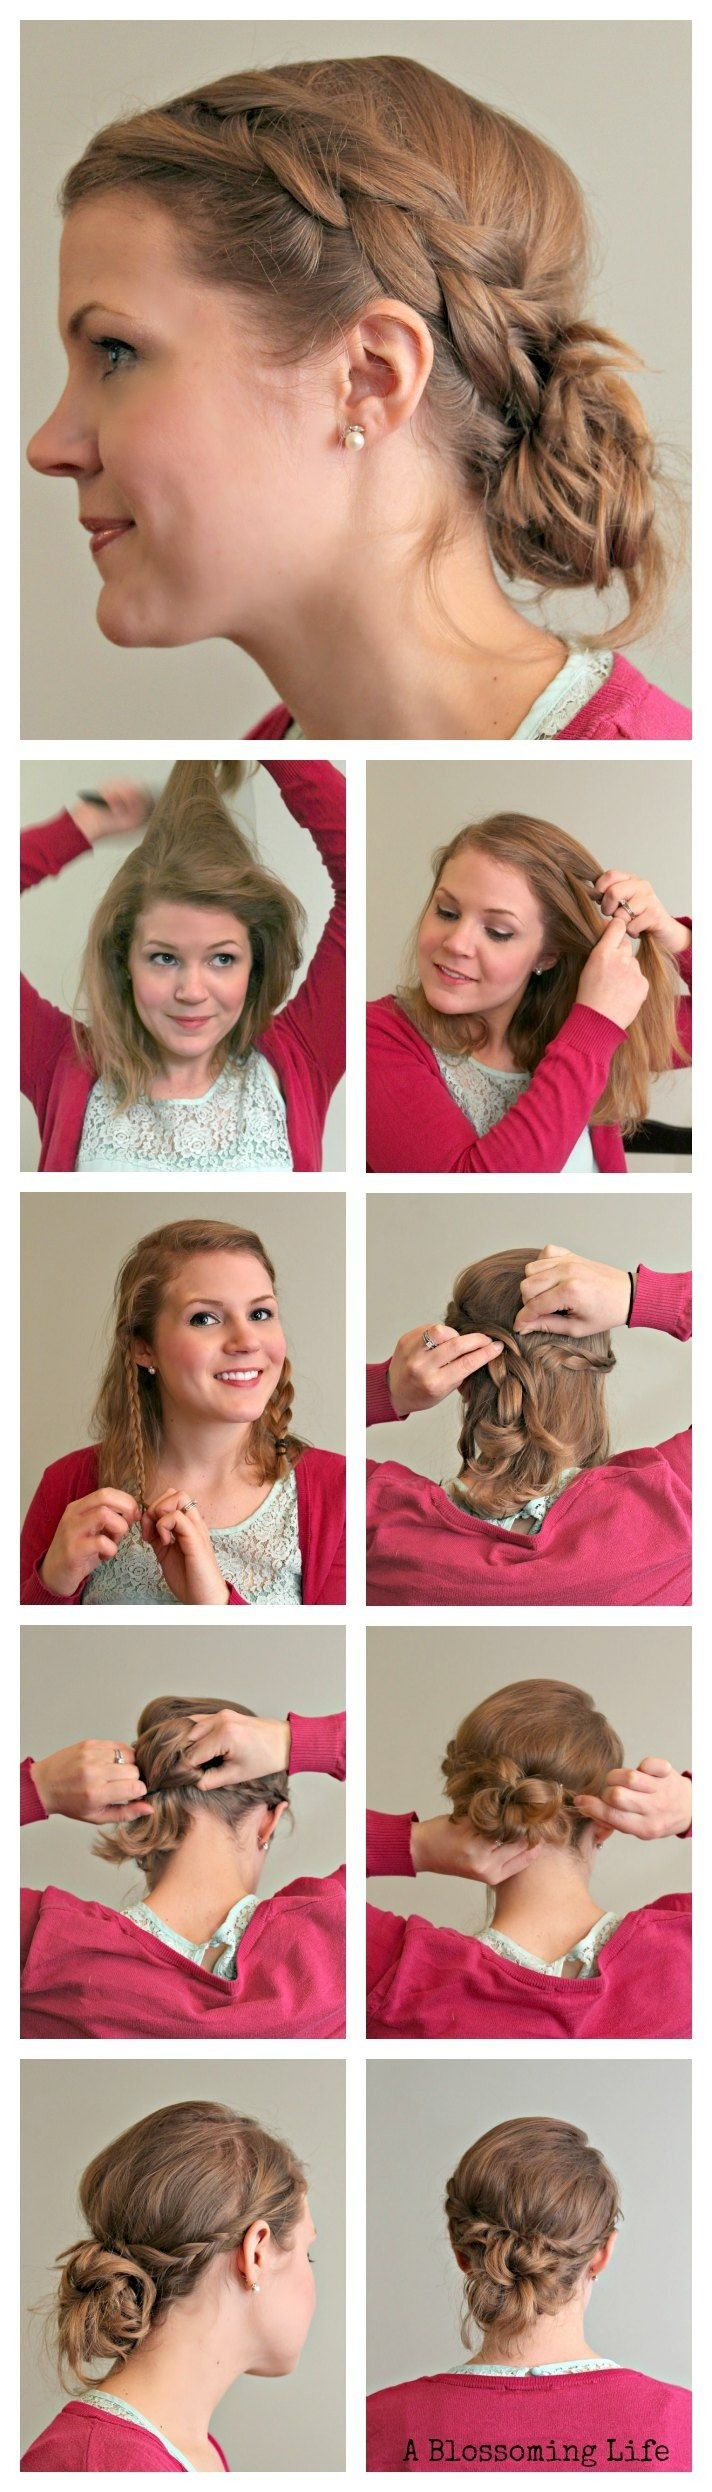 Messy Braided Updo Tutorial